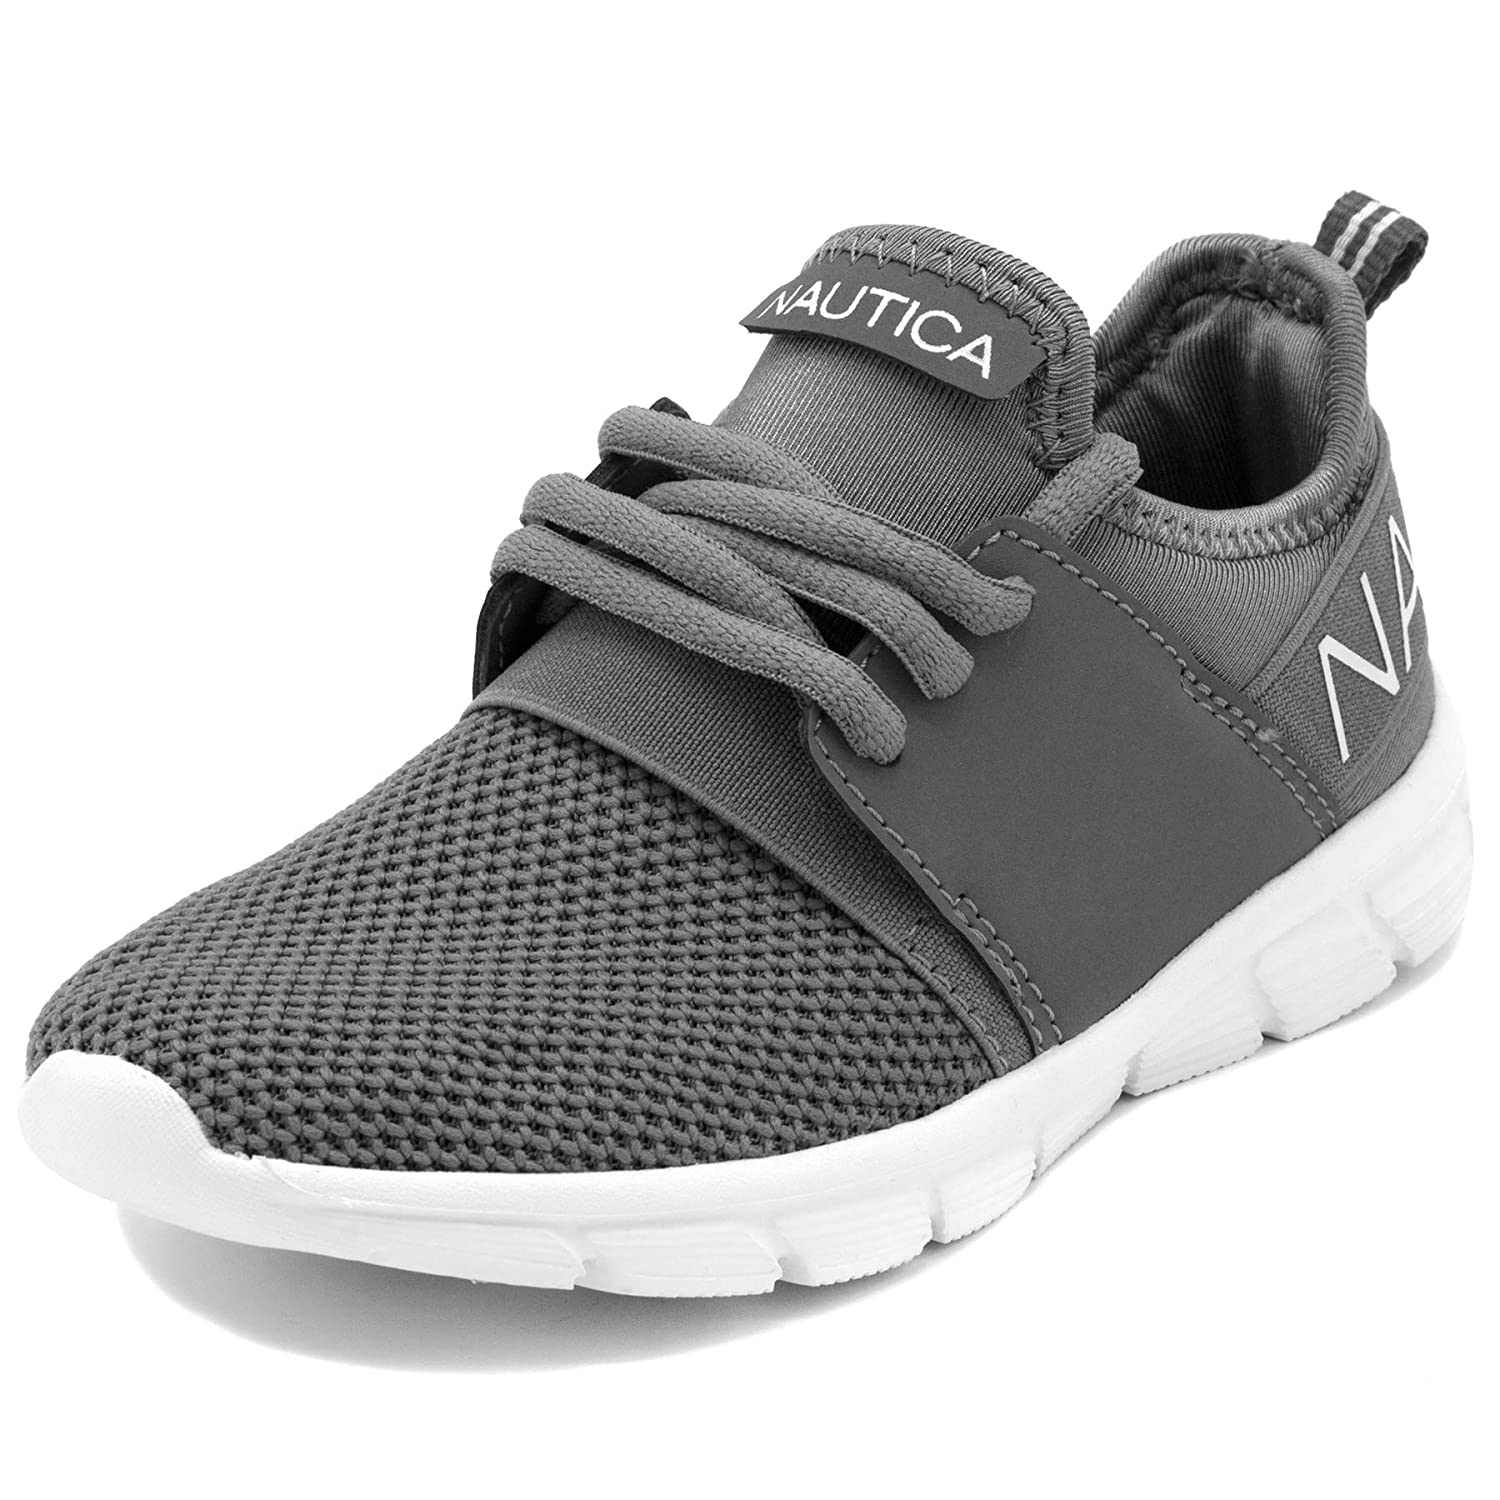 Nautica Kids Boys Sneaker Comfortable Running Shoes - Little Kid/Big Kid - (Lace Up/Slip On)